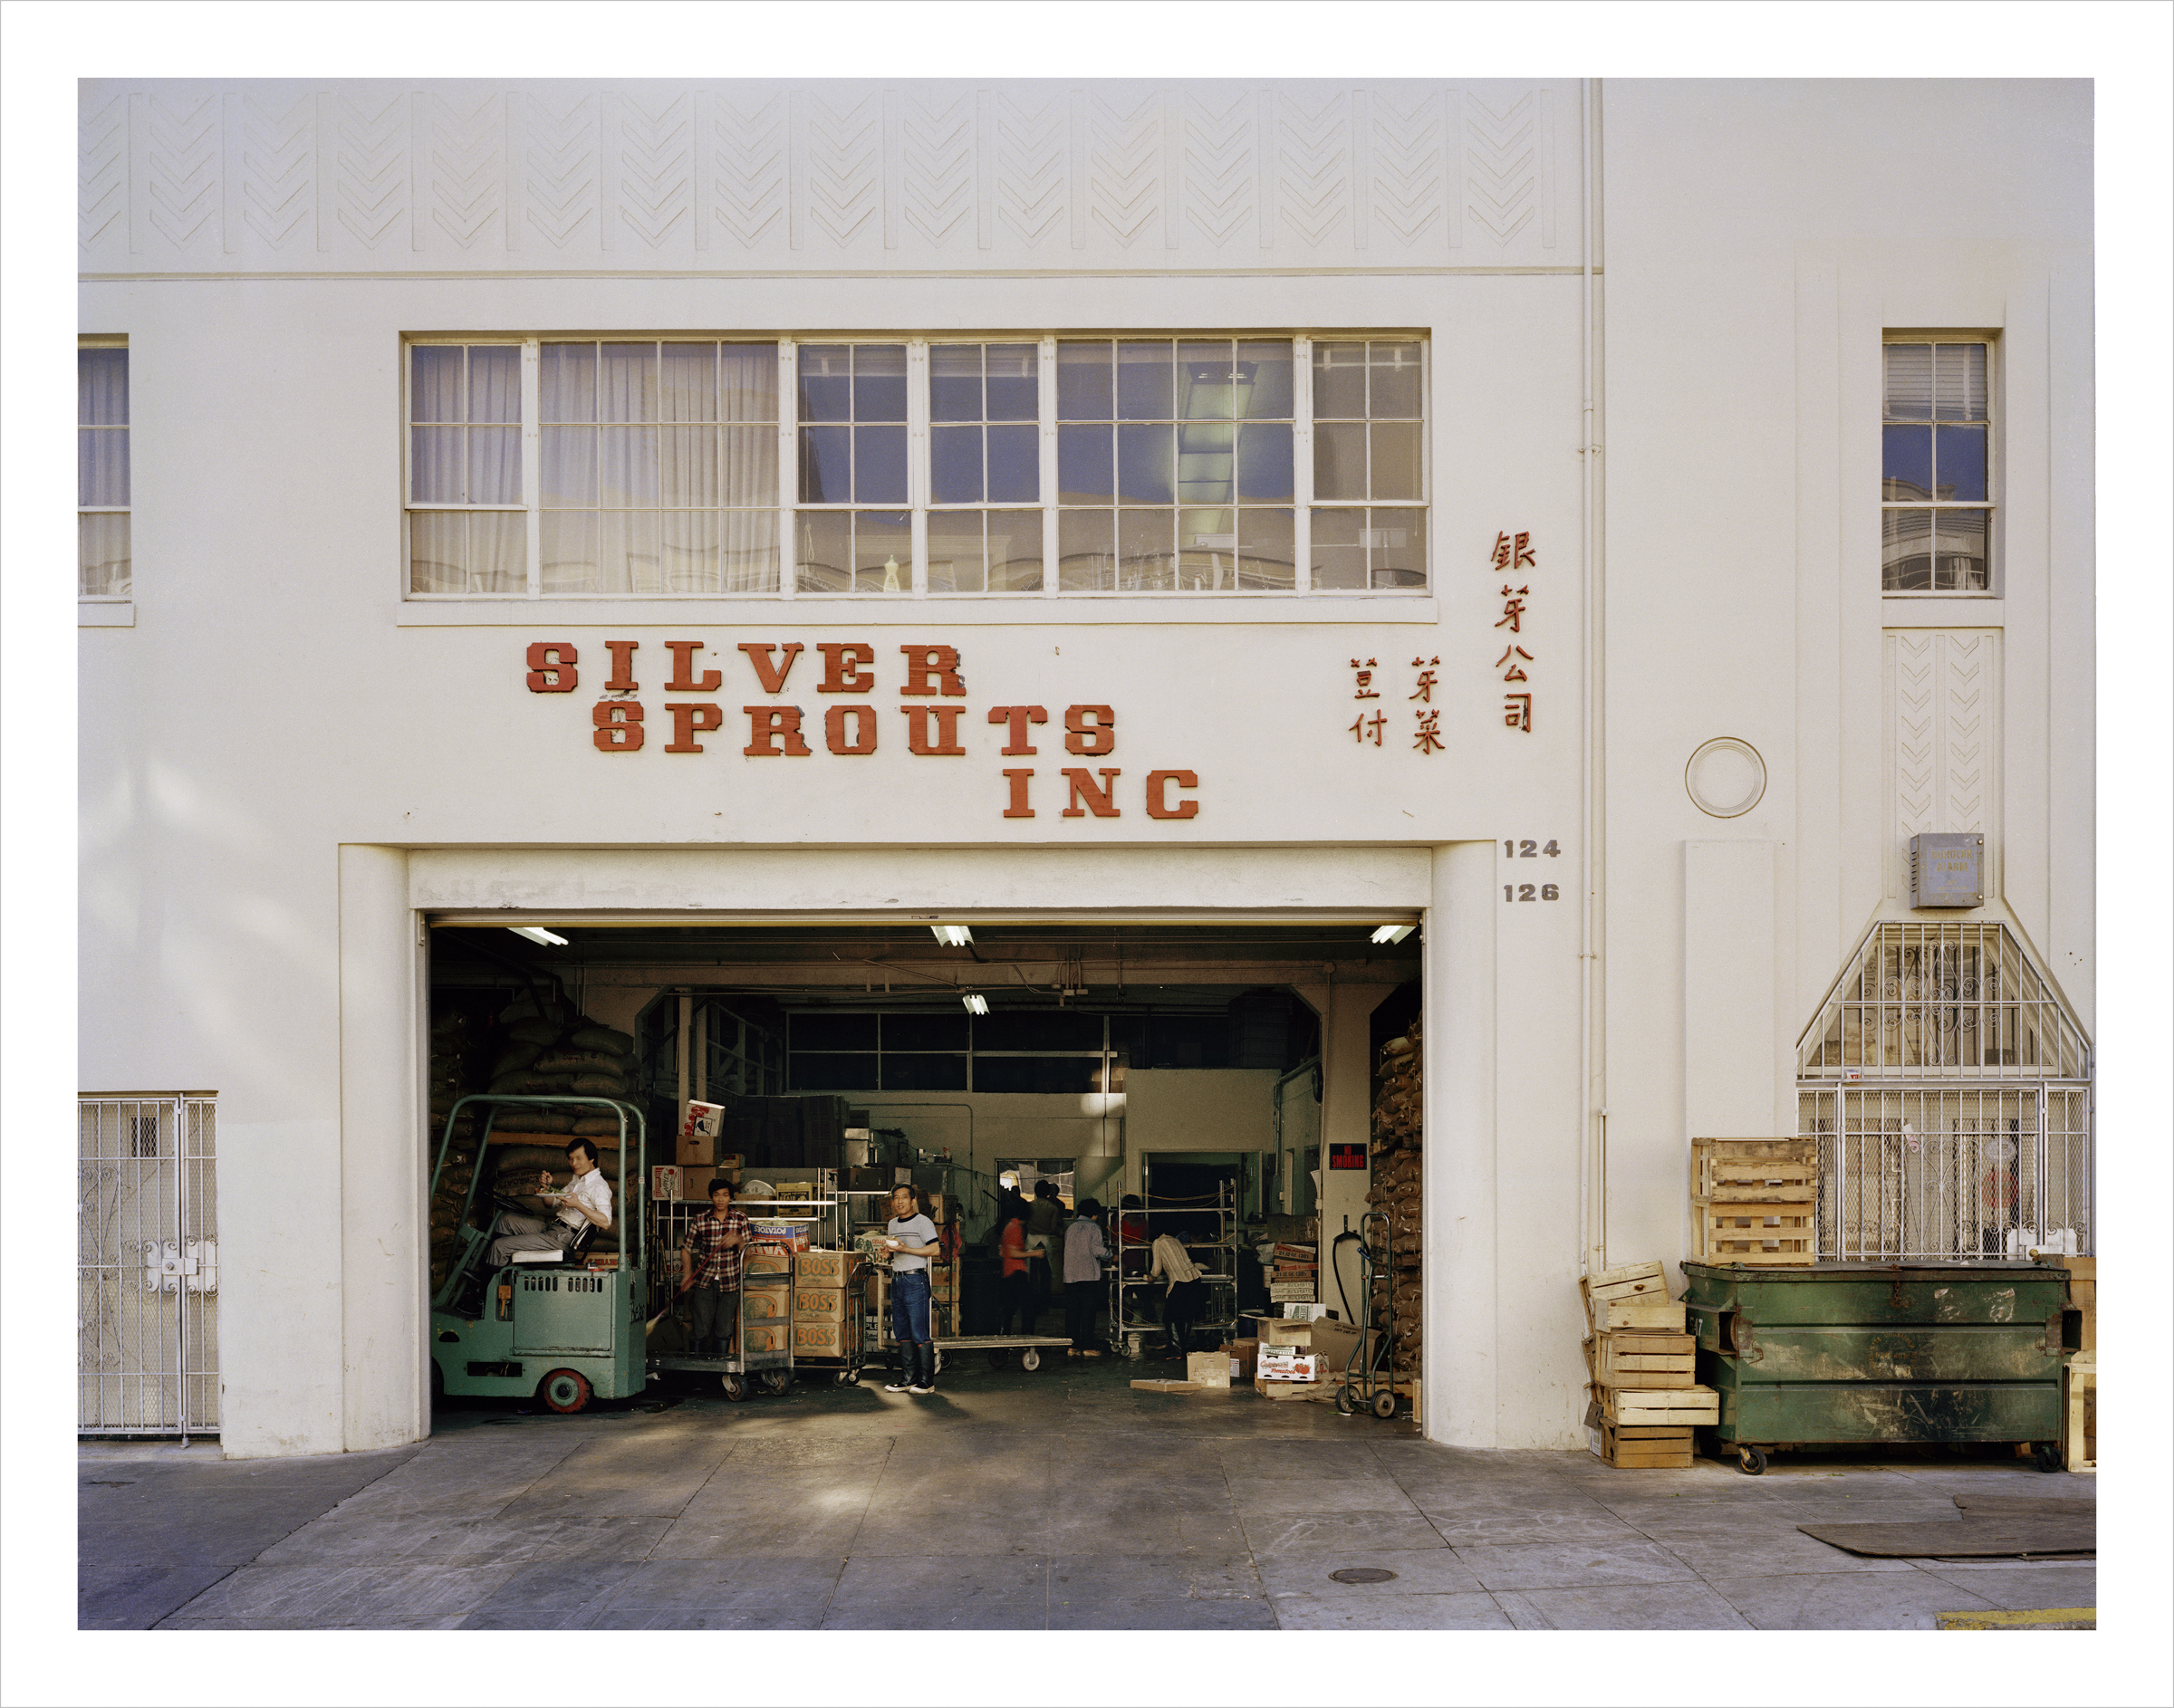 Lunch break, Silver Sprouts Inc, 124-126 Russ Street, 1980 Archival Pigment Print, 2016 16 x 20 inches, edition of 5 20 x 24 inches, edition of 2 30 x 40 inches, edition of 2